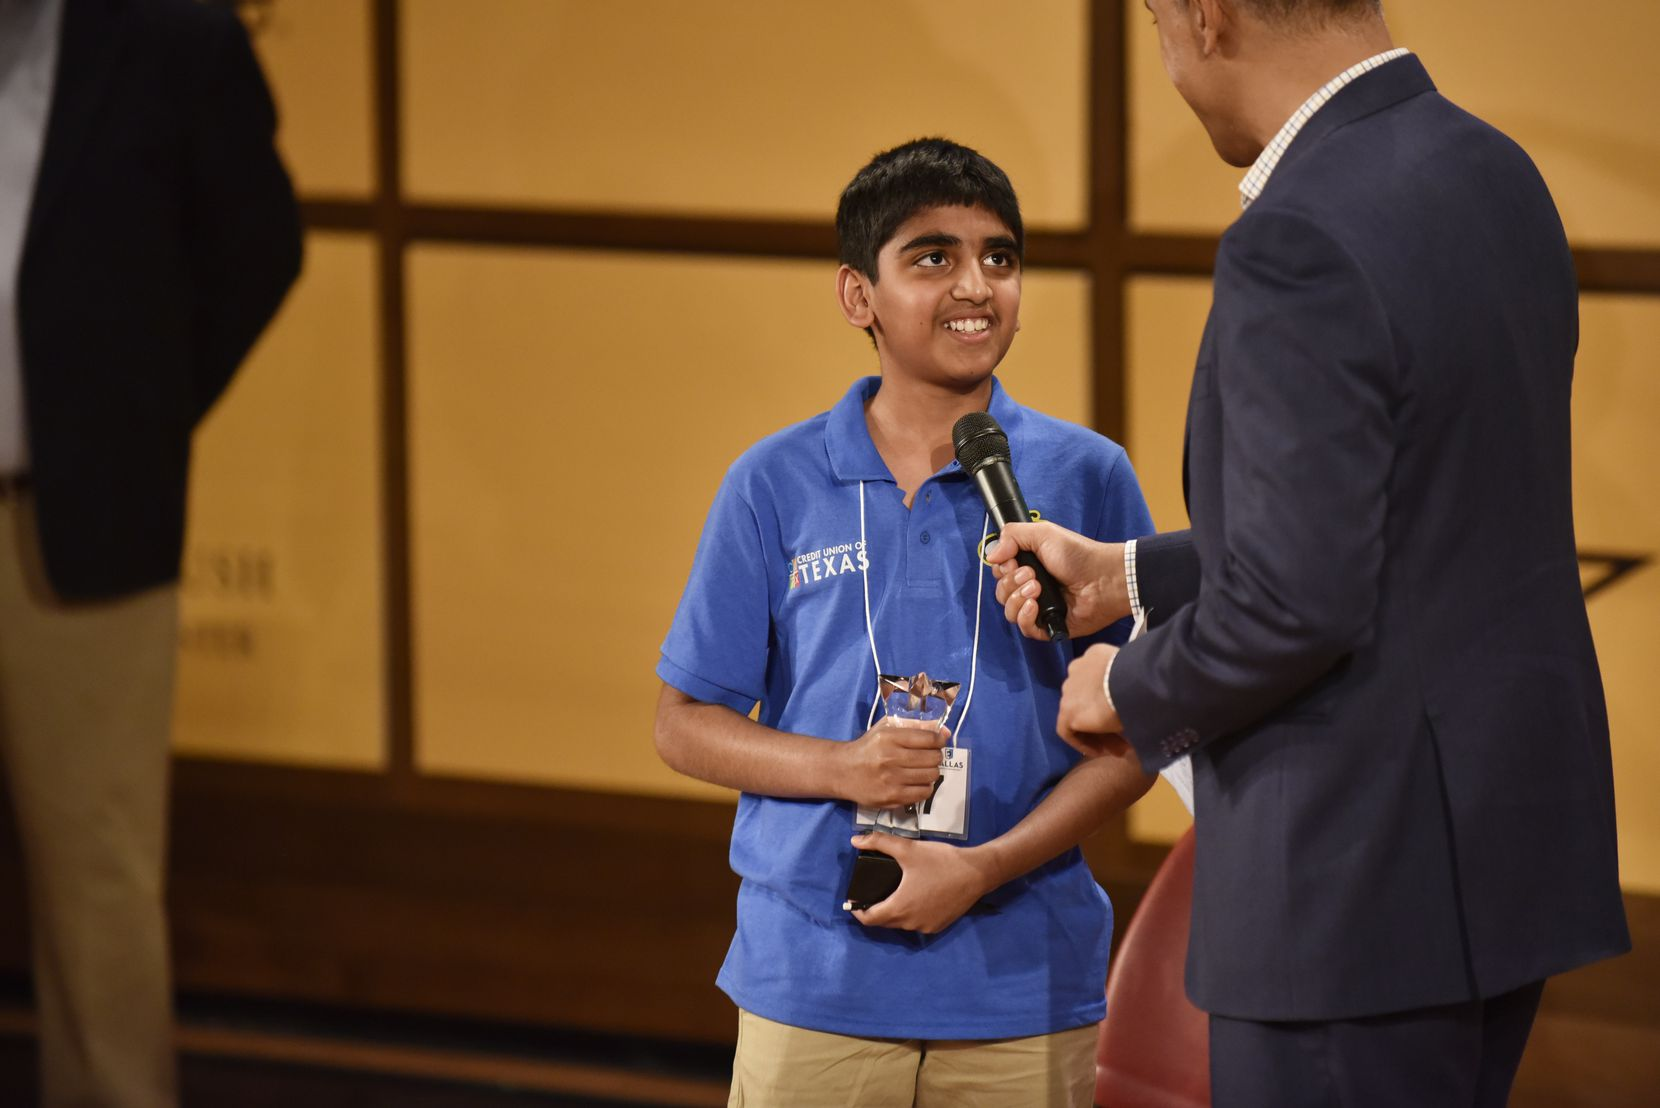 Abhijay Kodali, of Denton County, reacts with a smile as he's interviewed by WFAA news anchor Chris Lawrence after winning first place at the 61st annual Golden Chick Dallas Regional Spelling Bee at the George W. Bush Presidential Center on the campus of Southern Methodist University in Dallas, Saturday, March 09, 2019.